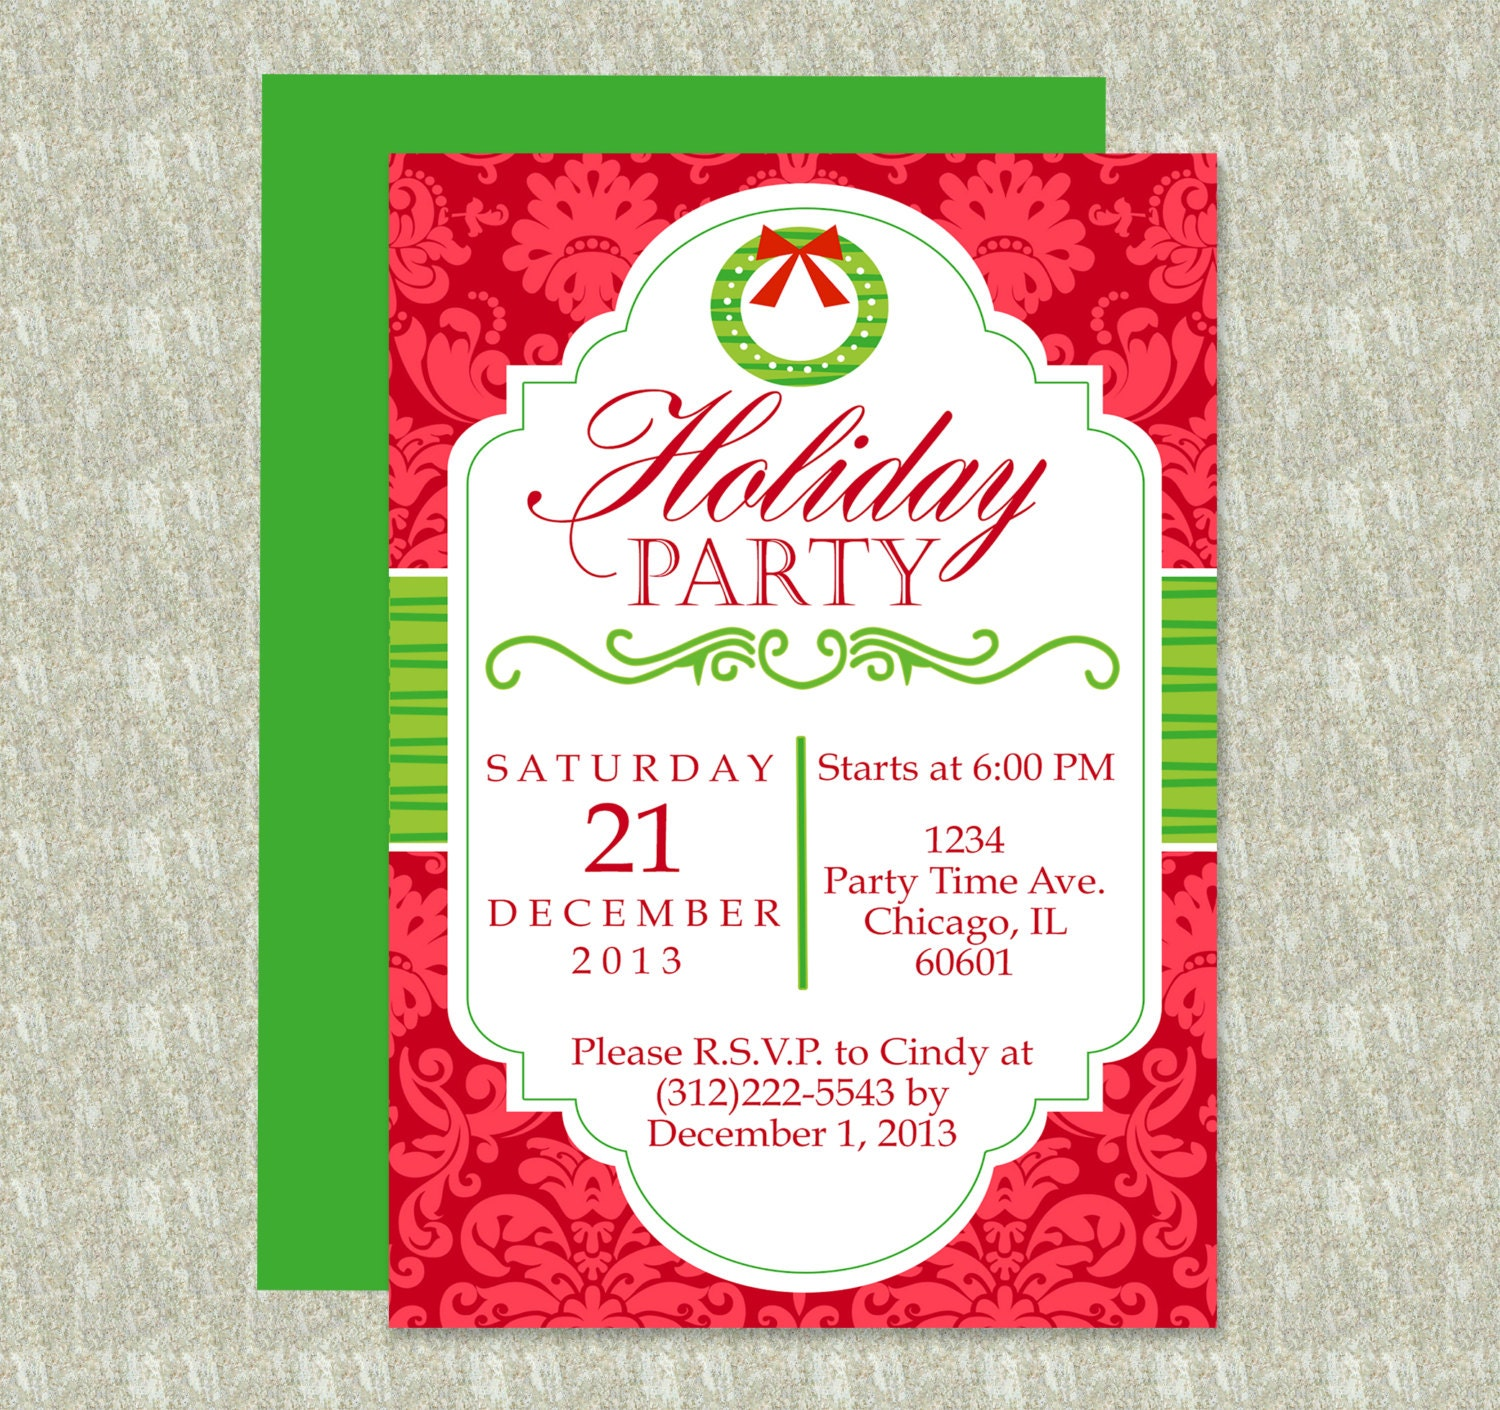 holiday party invitation editable template microsoft word